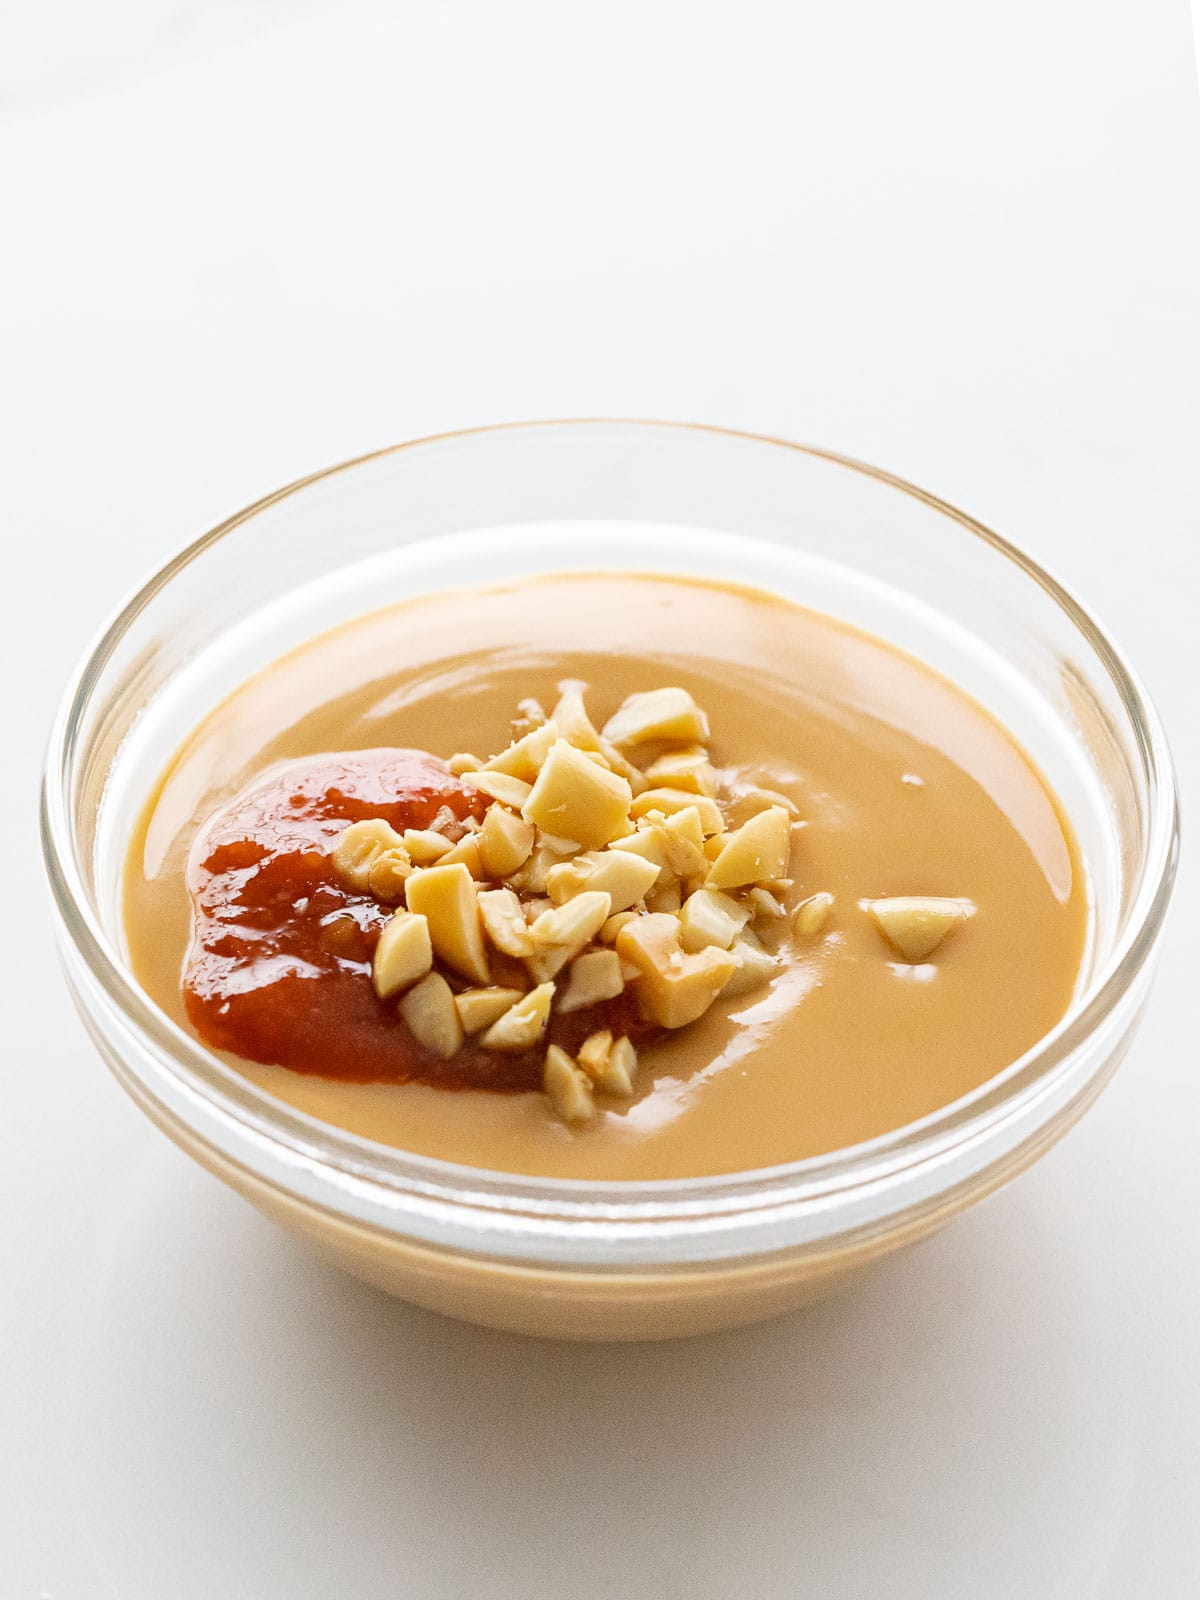 Vietnamese peanut dipping sauce with red chili sauce and crushed peanuts